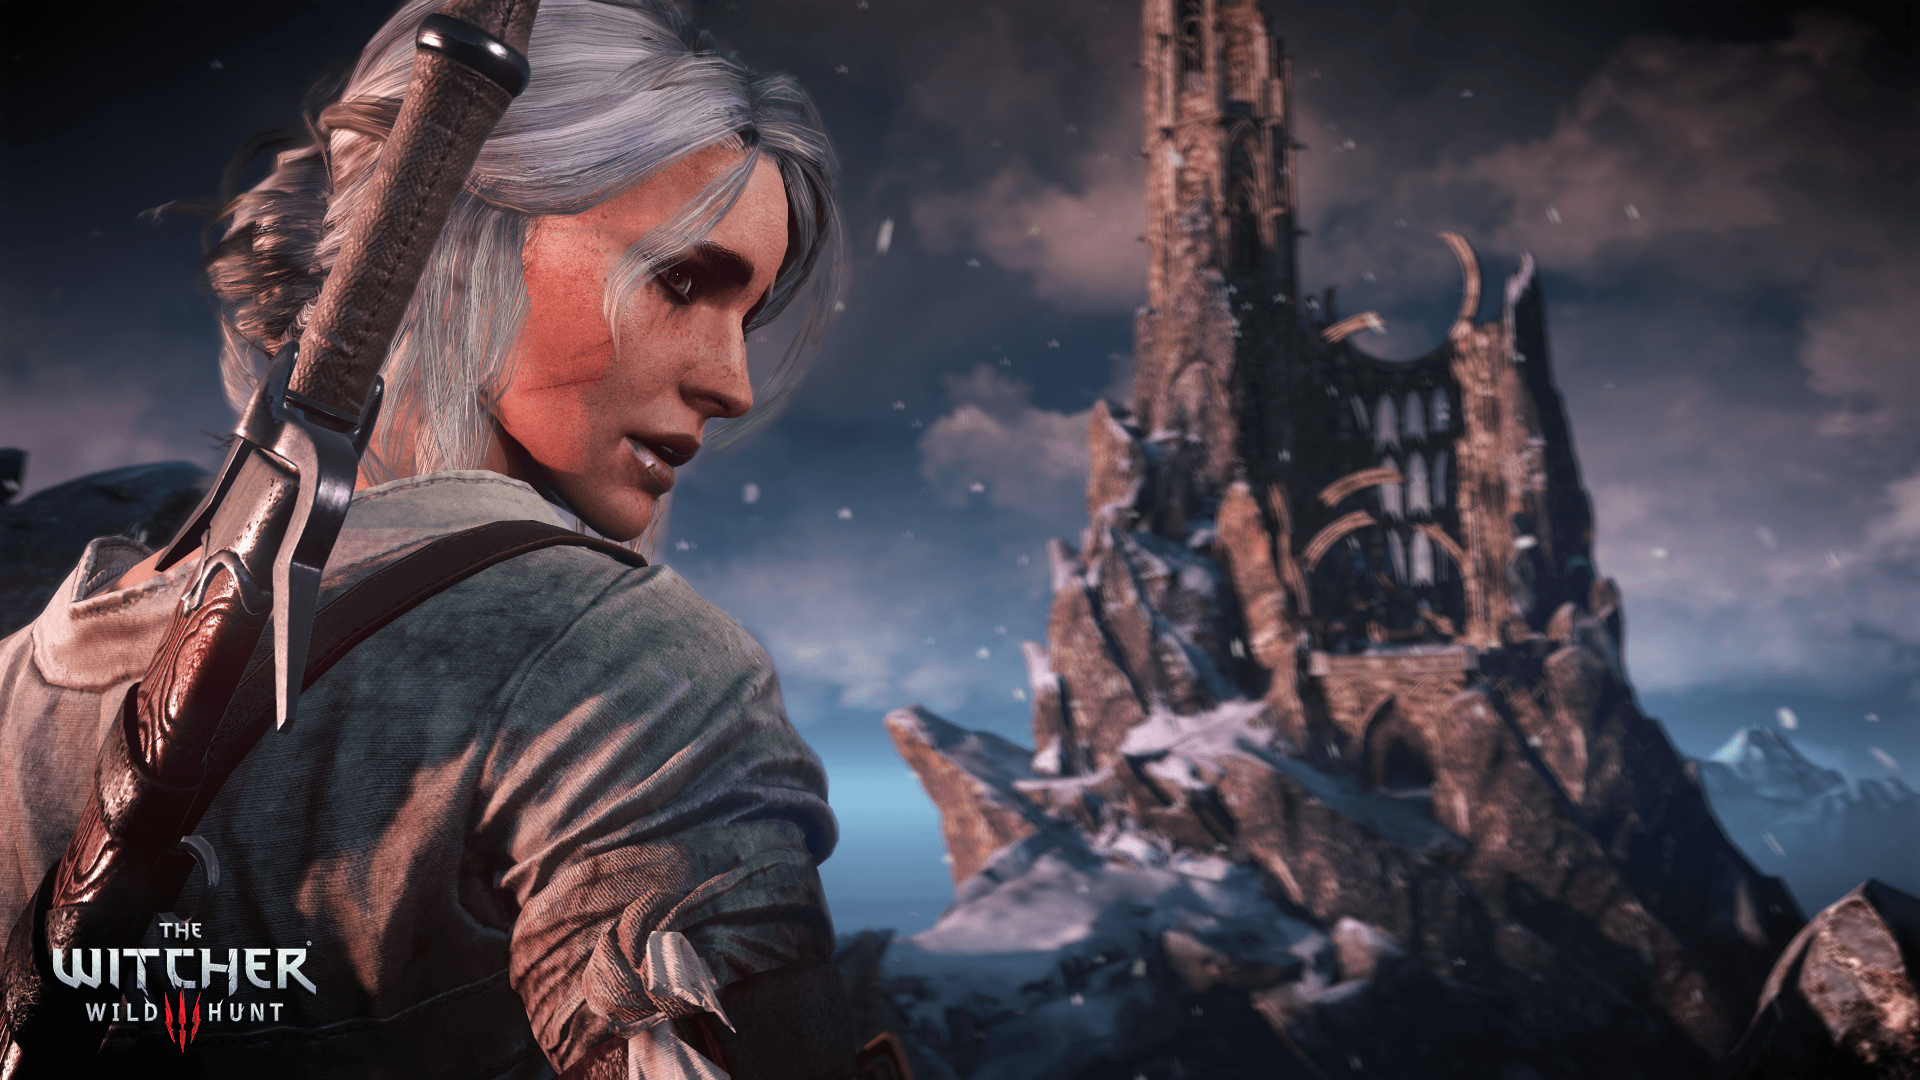 Witcher 3 Wallpaper 1440p Posted By John Thompson